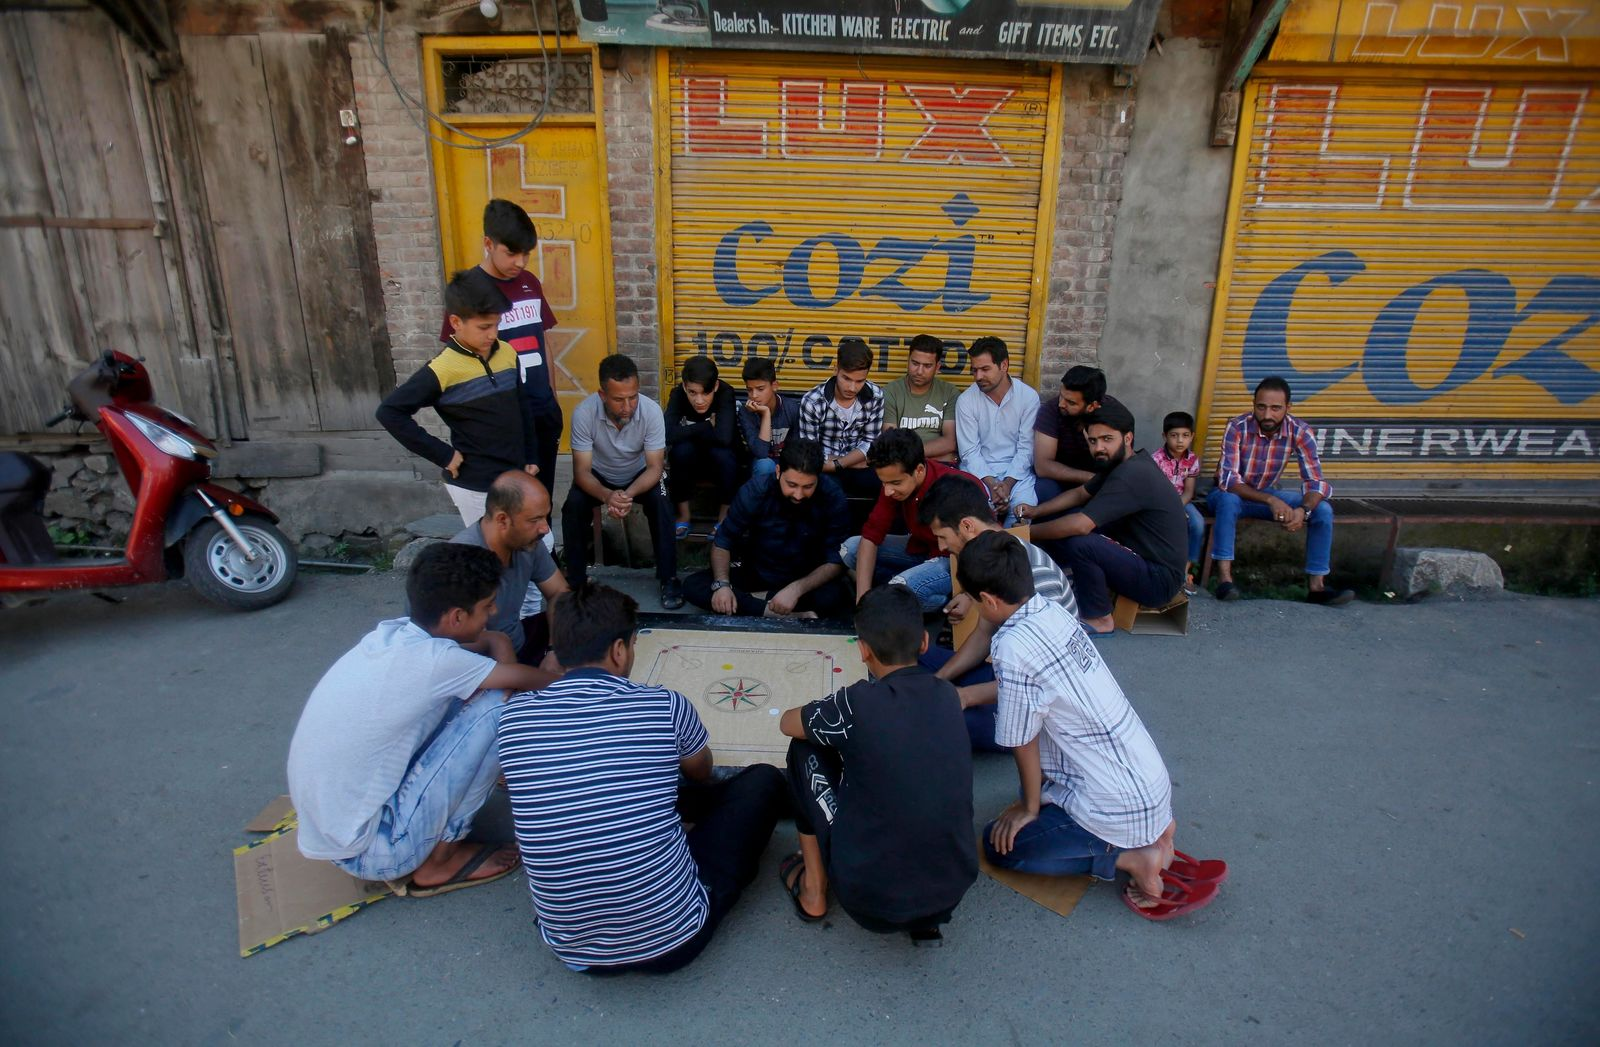 Kashmiri men play a board game at a closed market during security restrictions in Srinagar, Indian controlled Kashmir, Tuesday, Aug. 20, 2019. The president of Pakistani-administered Kashmir welcomed efforts by U.S. President Donald Trump to lower tensions between Pakistan and India over the disputed Himalayan region on Tuesday and warned of a deepening humanitarian crisis and food shortages in the Indian-held portion. (AP Photo/Mukhtar Khan)